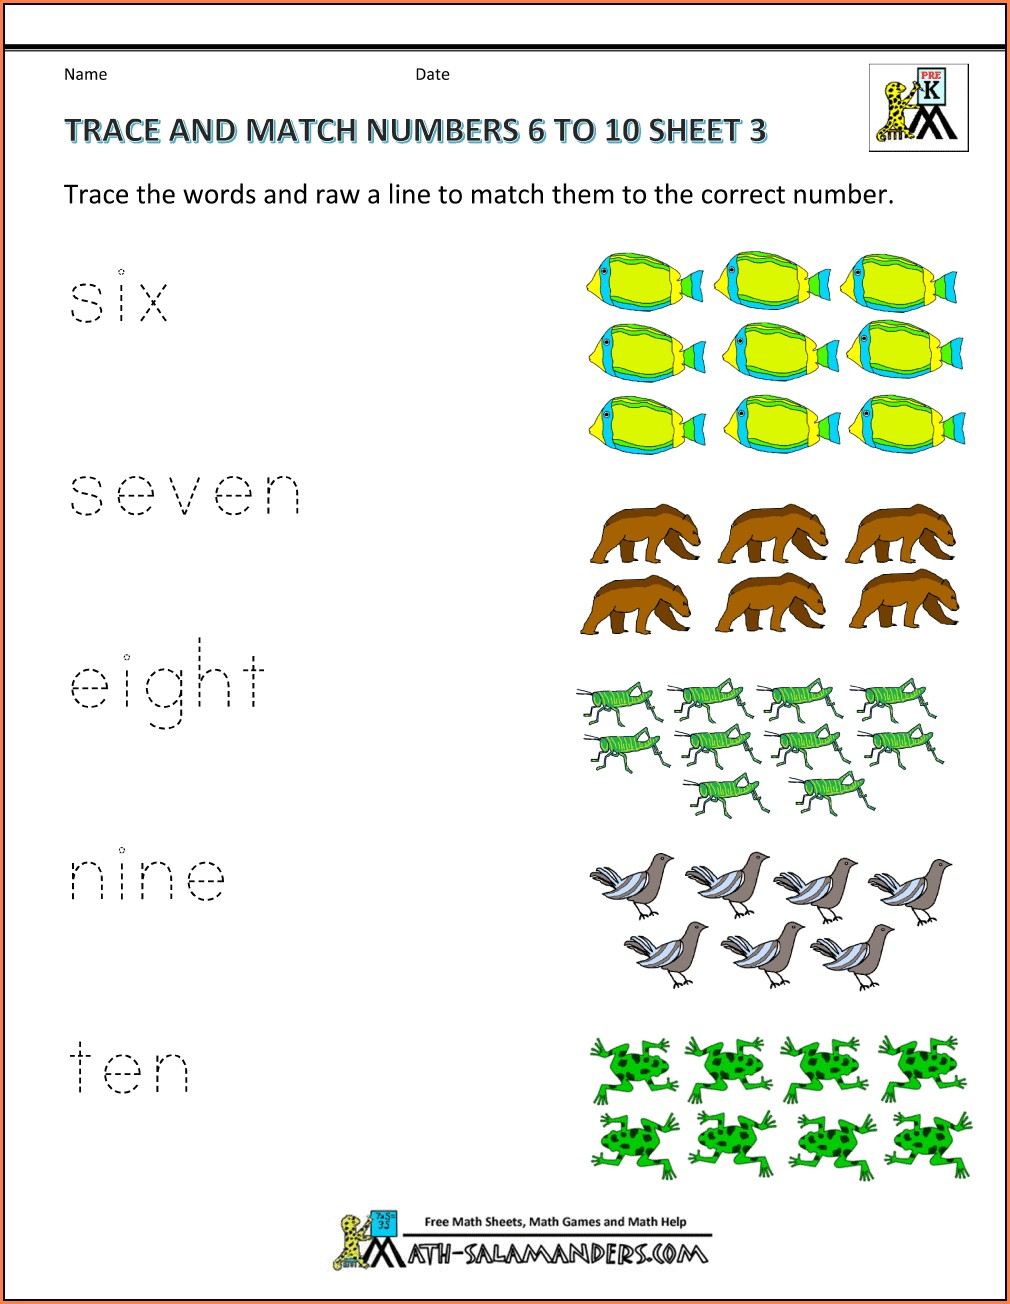 Free Math Worksheets Number Sequencing